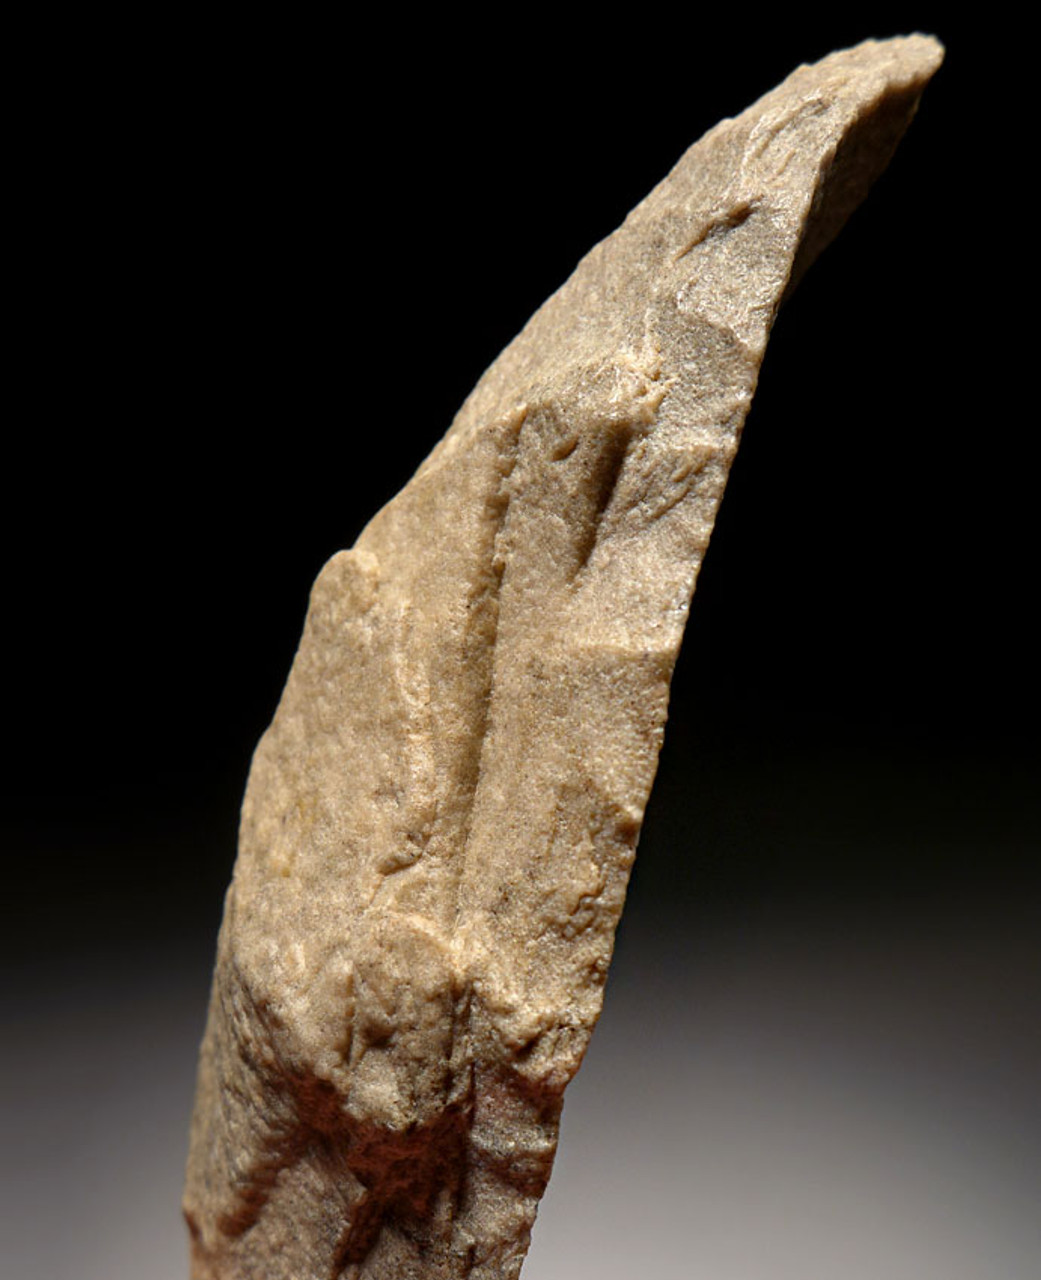 RARE SUPERB LARGE HIGH-BACKED PRESTIGE BLADE FROM THE TENERIAN AFRICAN NEOLITHIC MADE BY THE PEOPLE OF THE GREEN SAHARA *CAP195